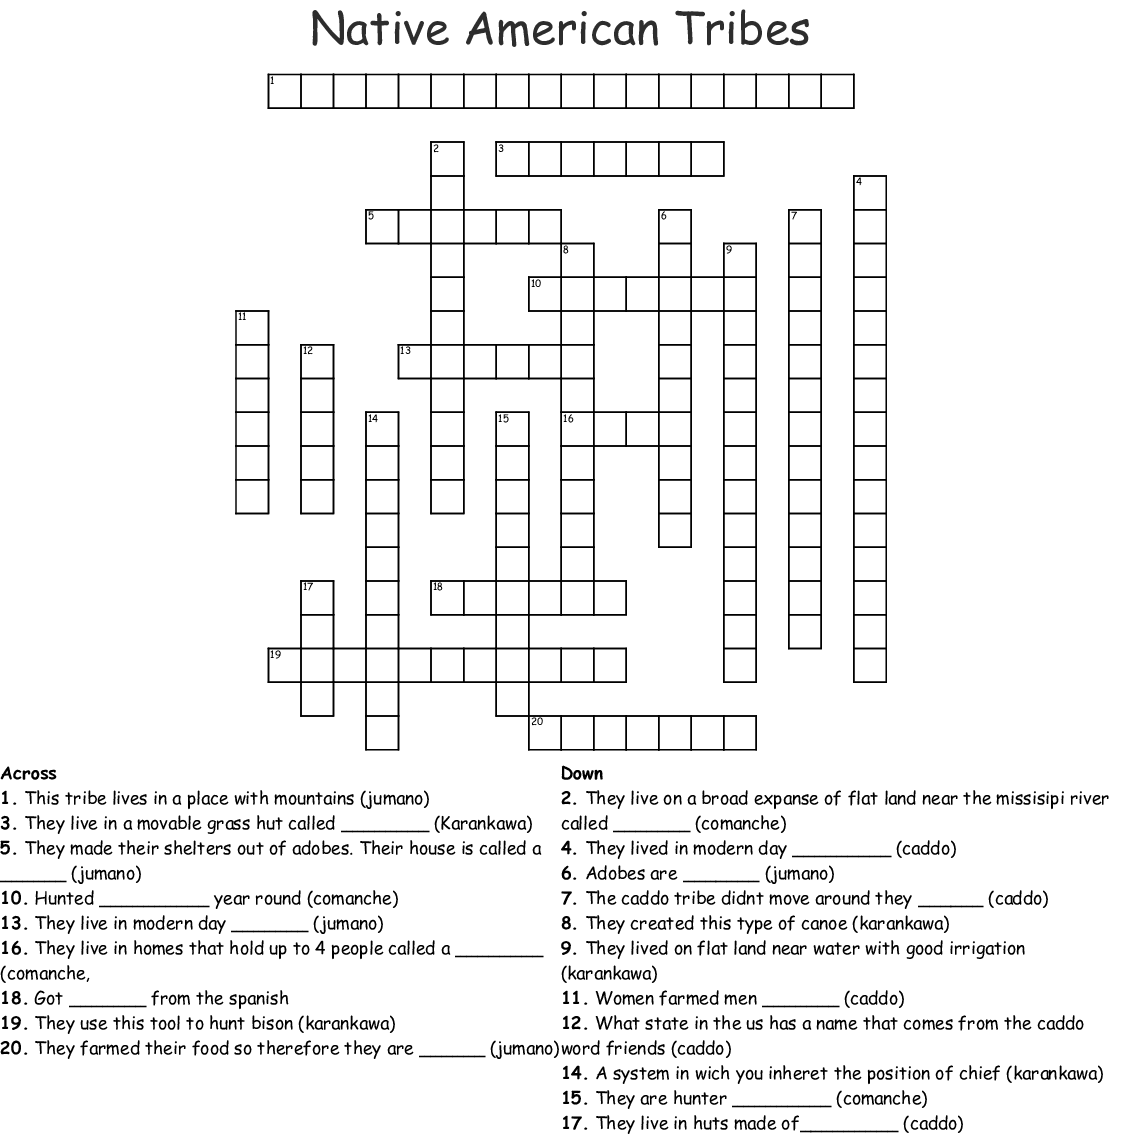 Native American Tribes Crossword